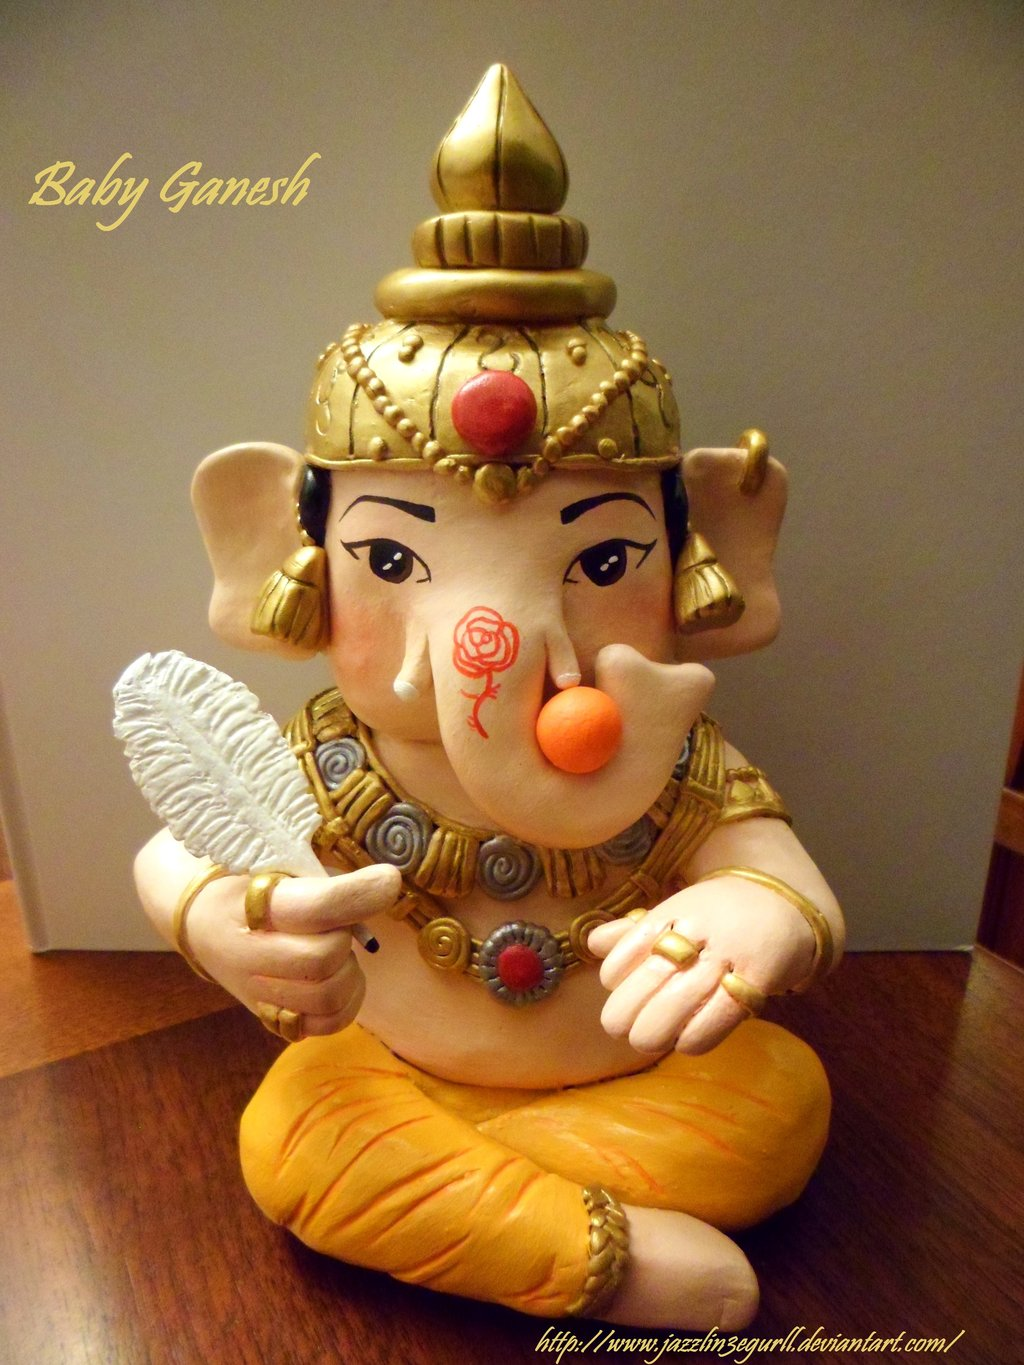 Cute Ganesha Hd Wallpaper Baby Ganesh Images Hd 1080p 2017 For Desktop Happy